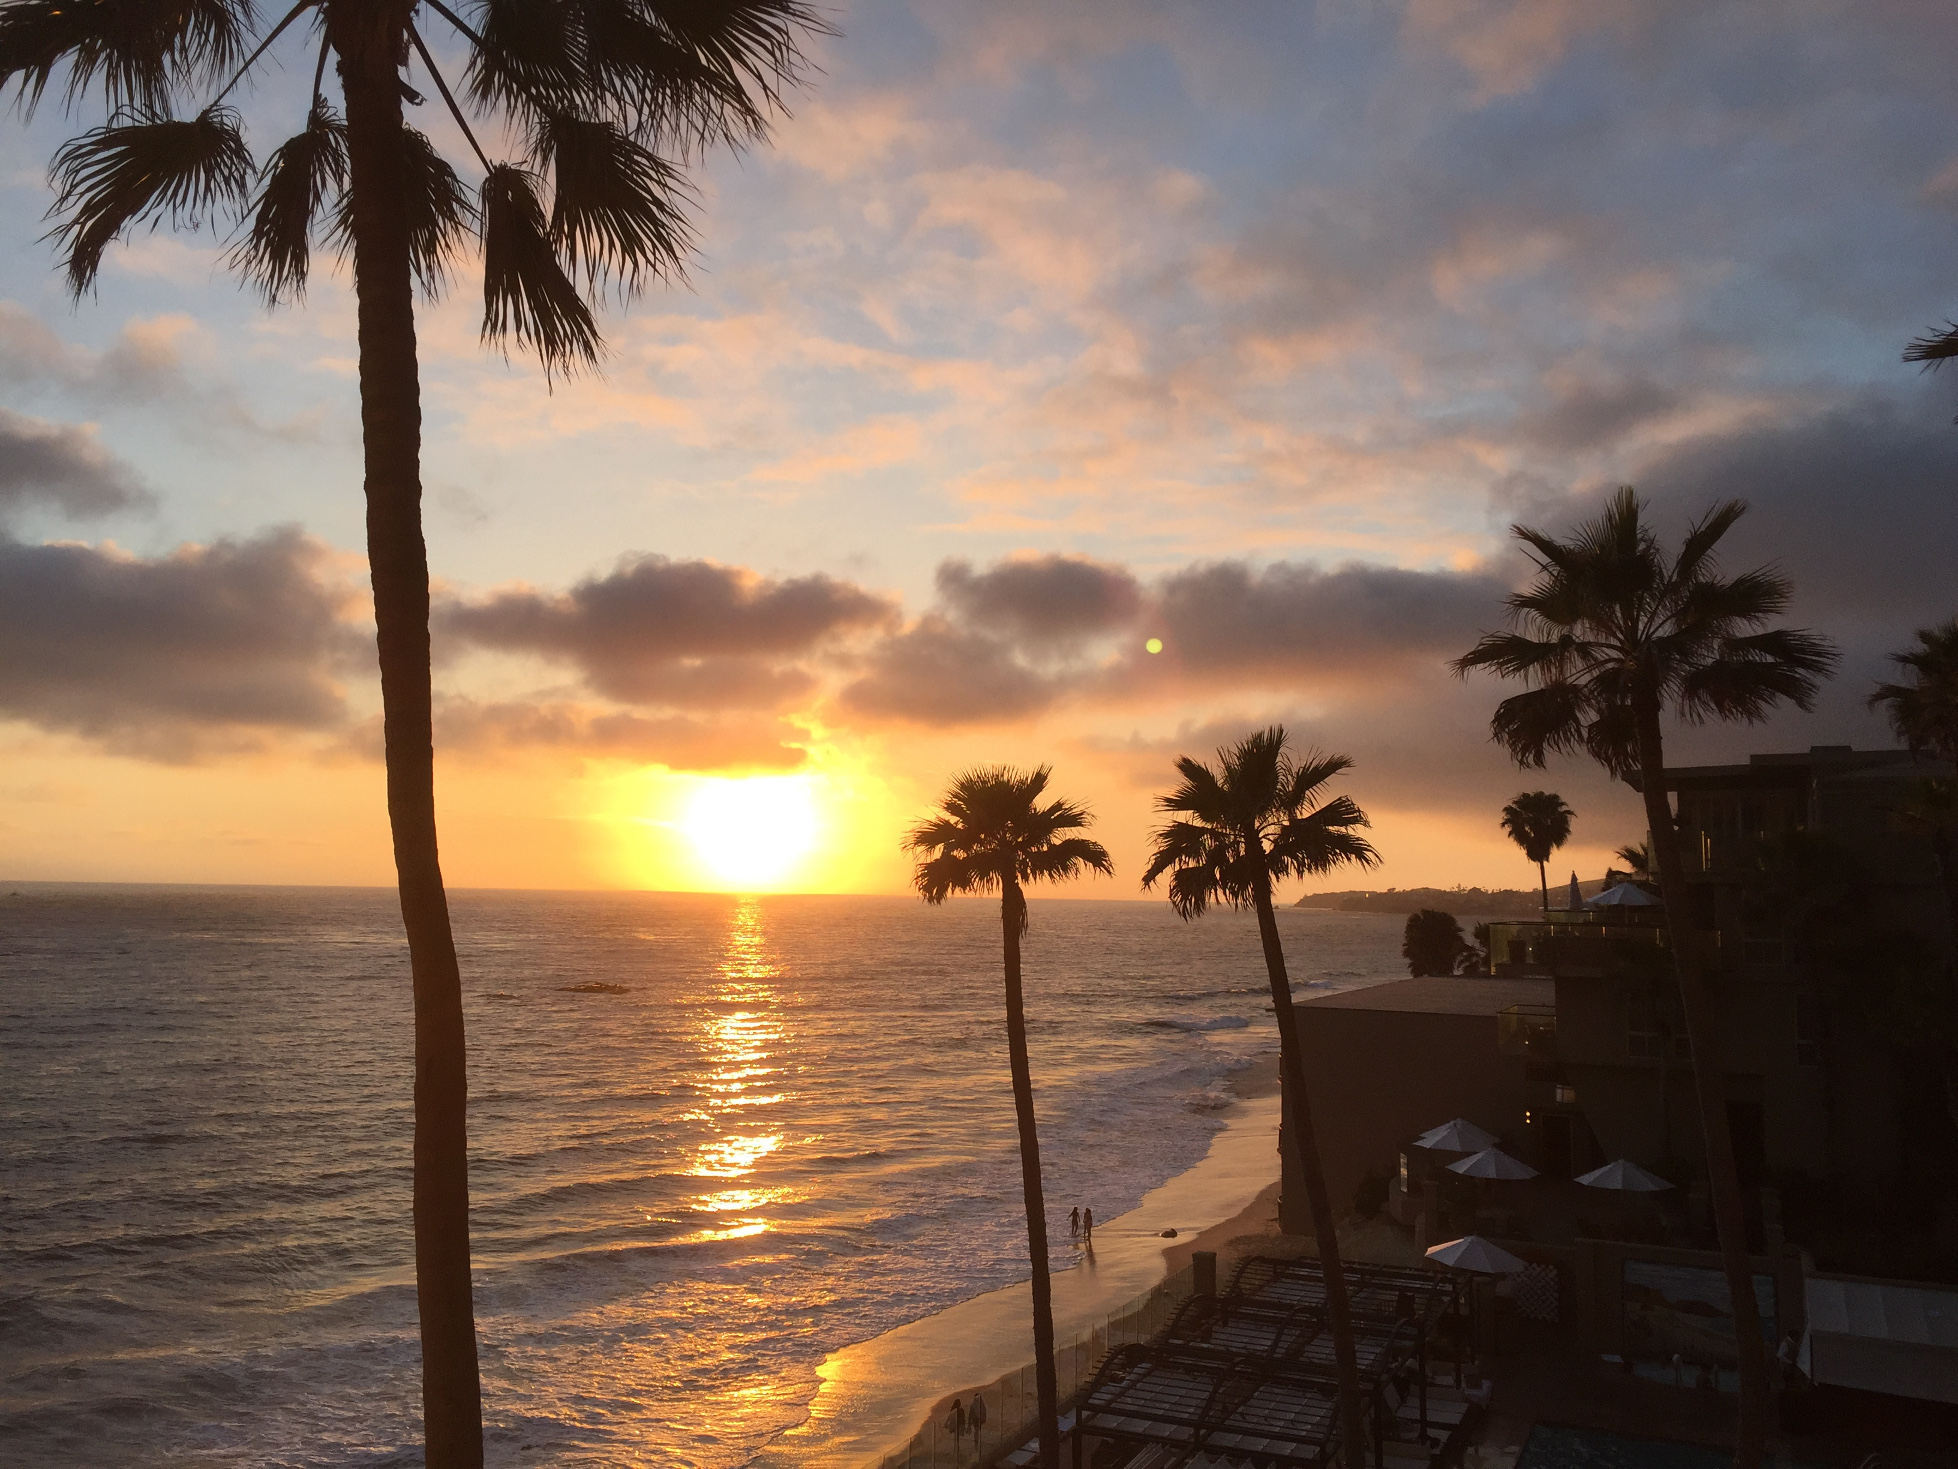 Laguna Beach, CA sunset views